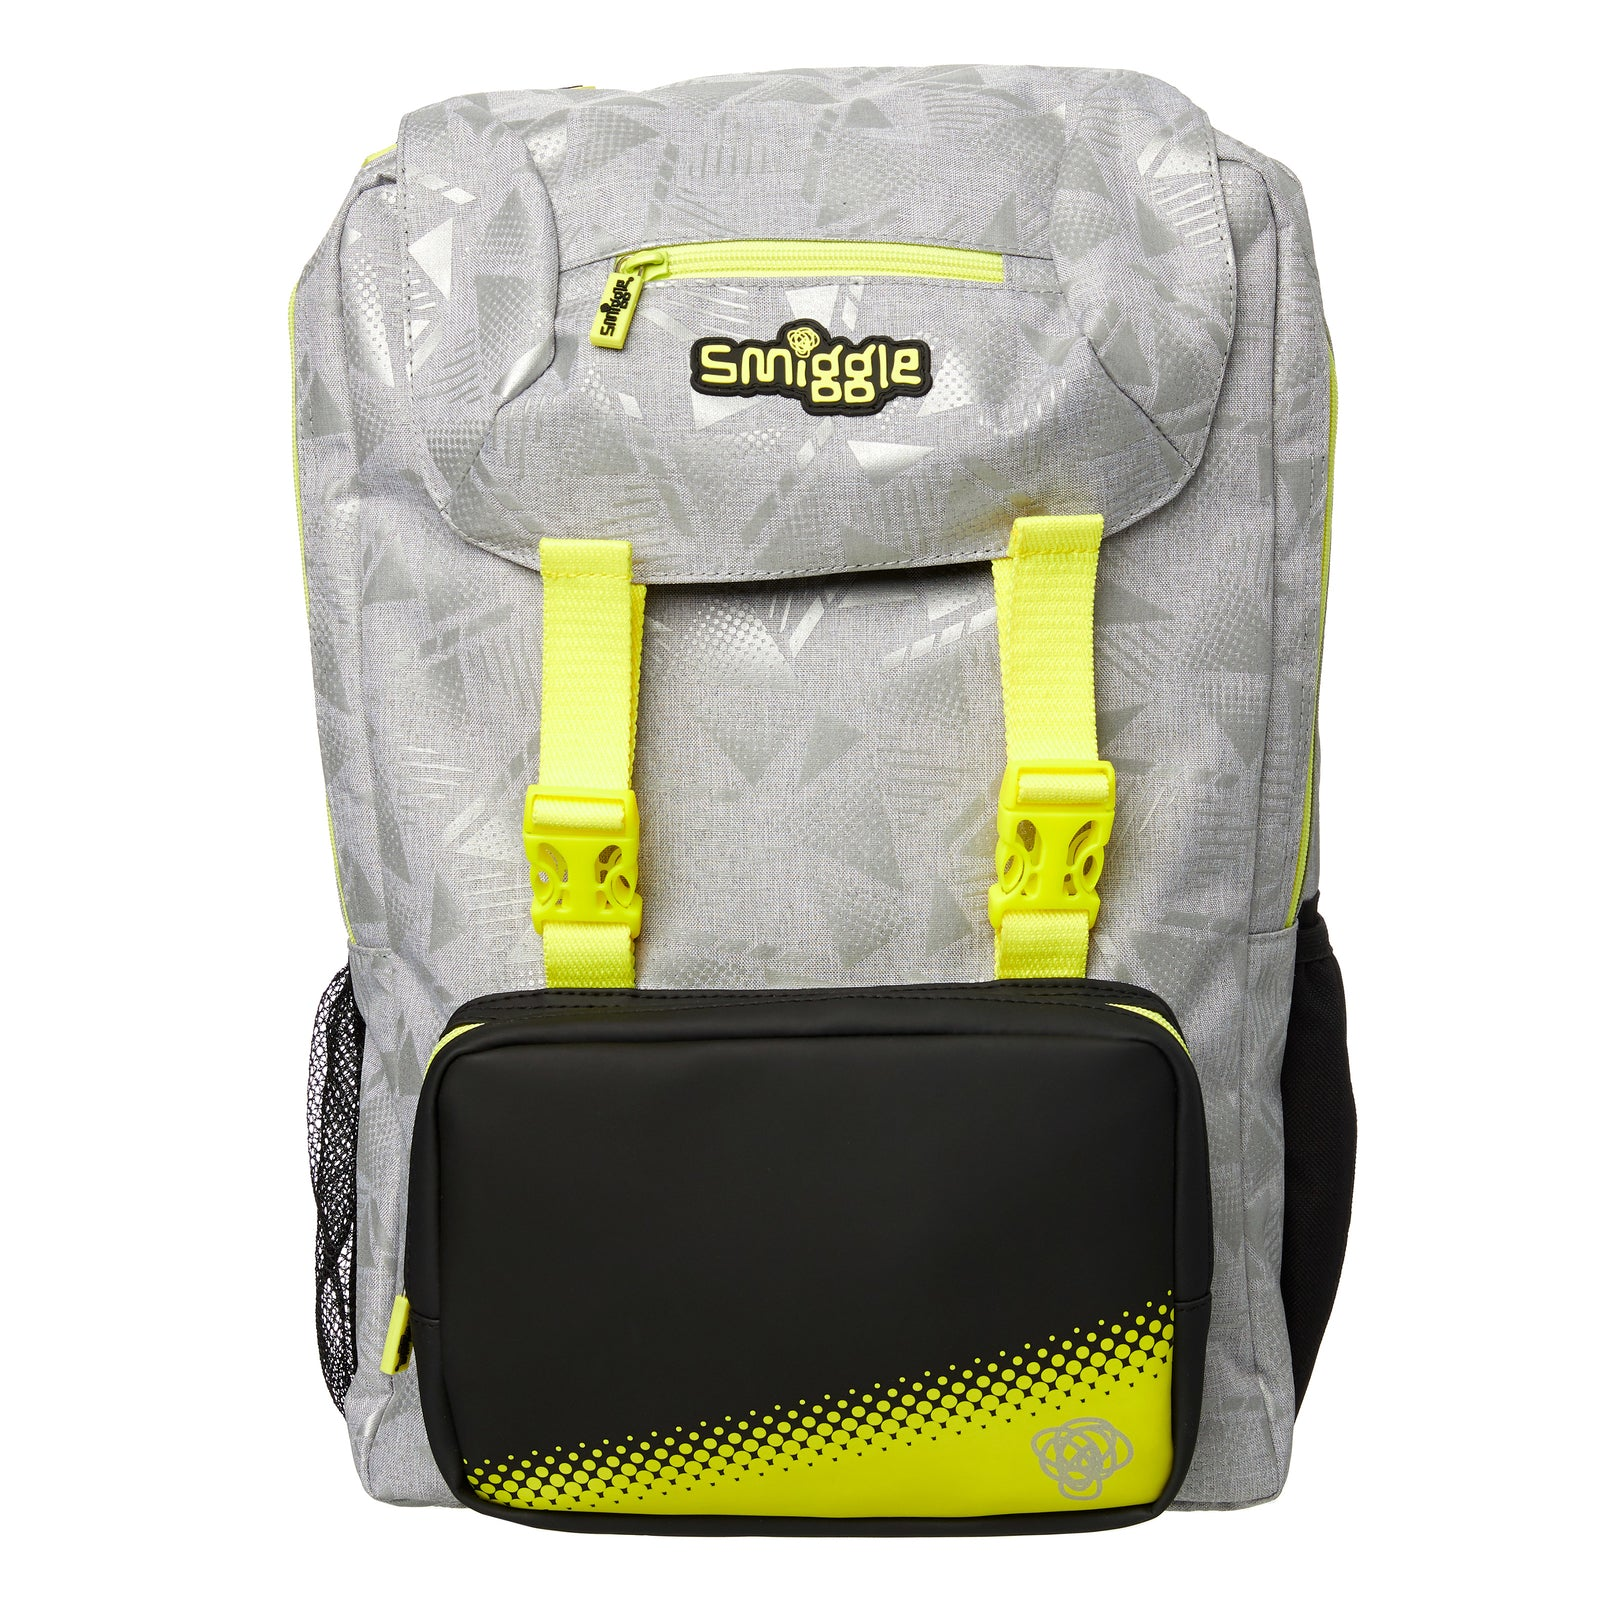 SMIGGLE - FRESH FOLDOVER BACKPACK GRAY - MyVaniteeCase